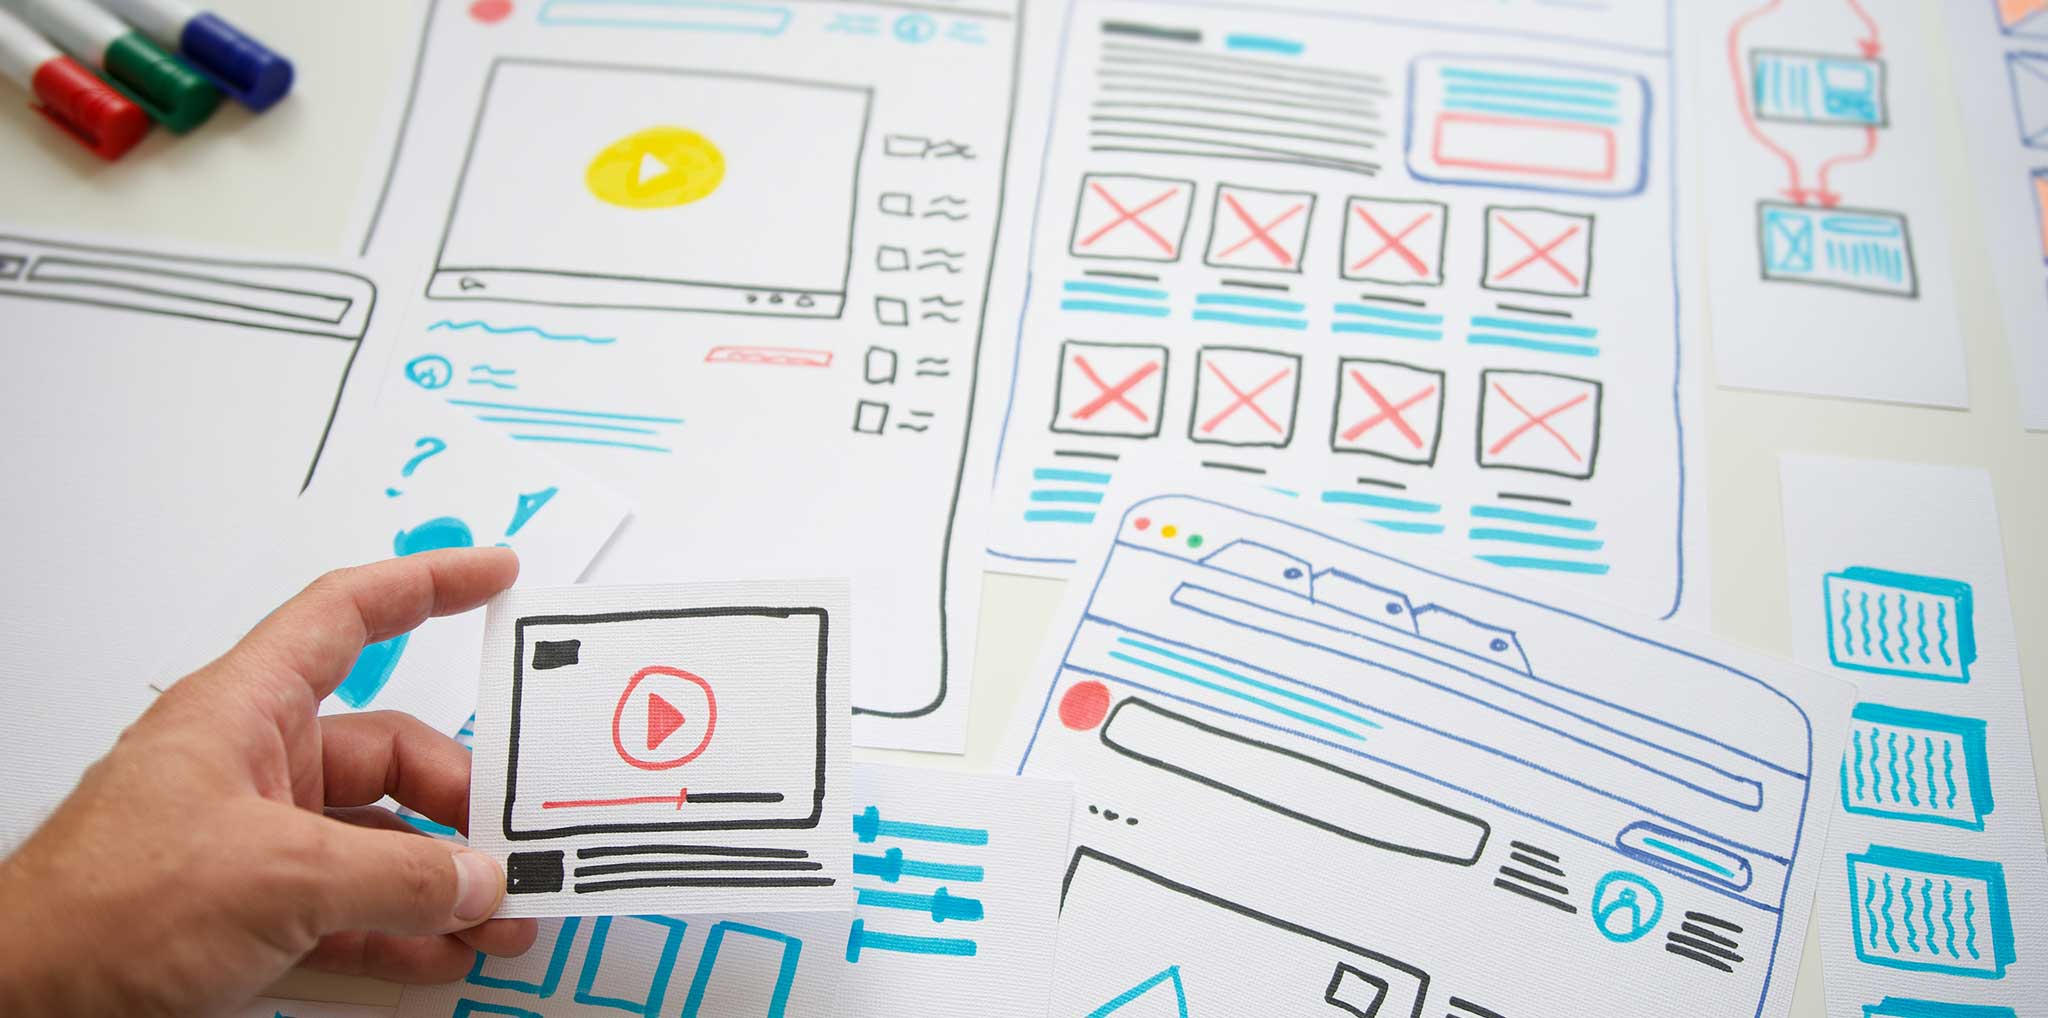 paper cut outs of wireframe